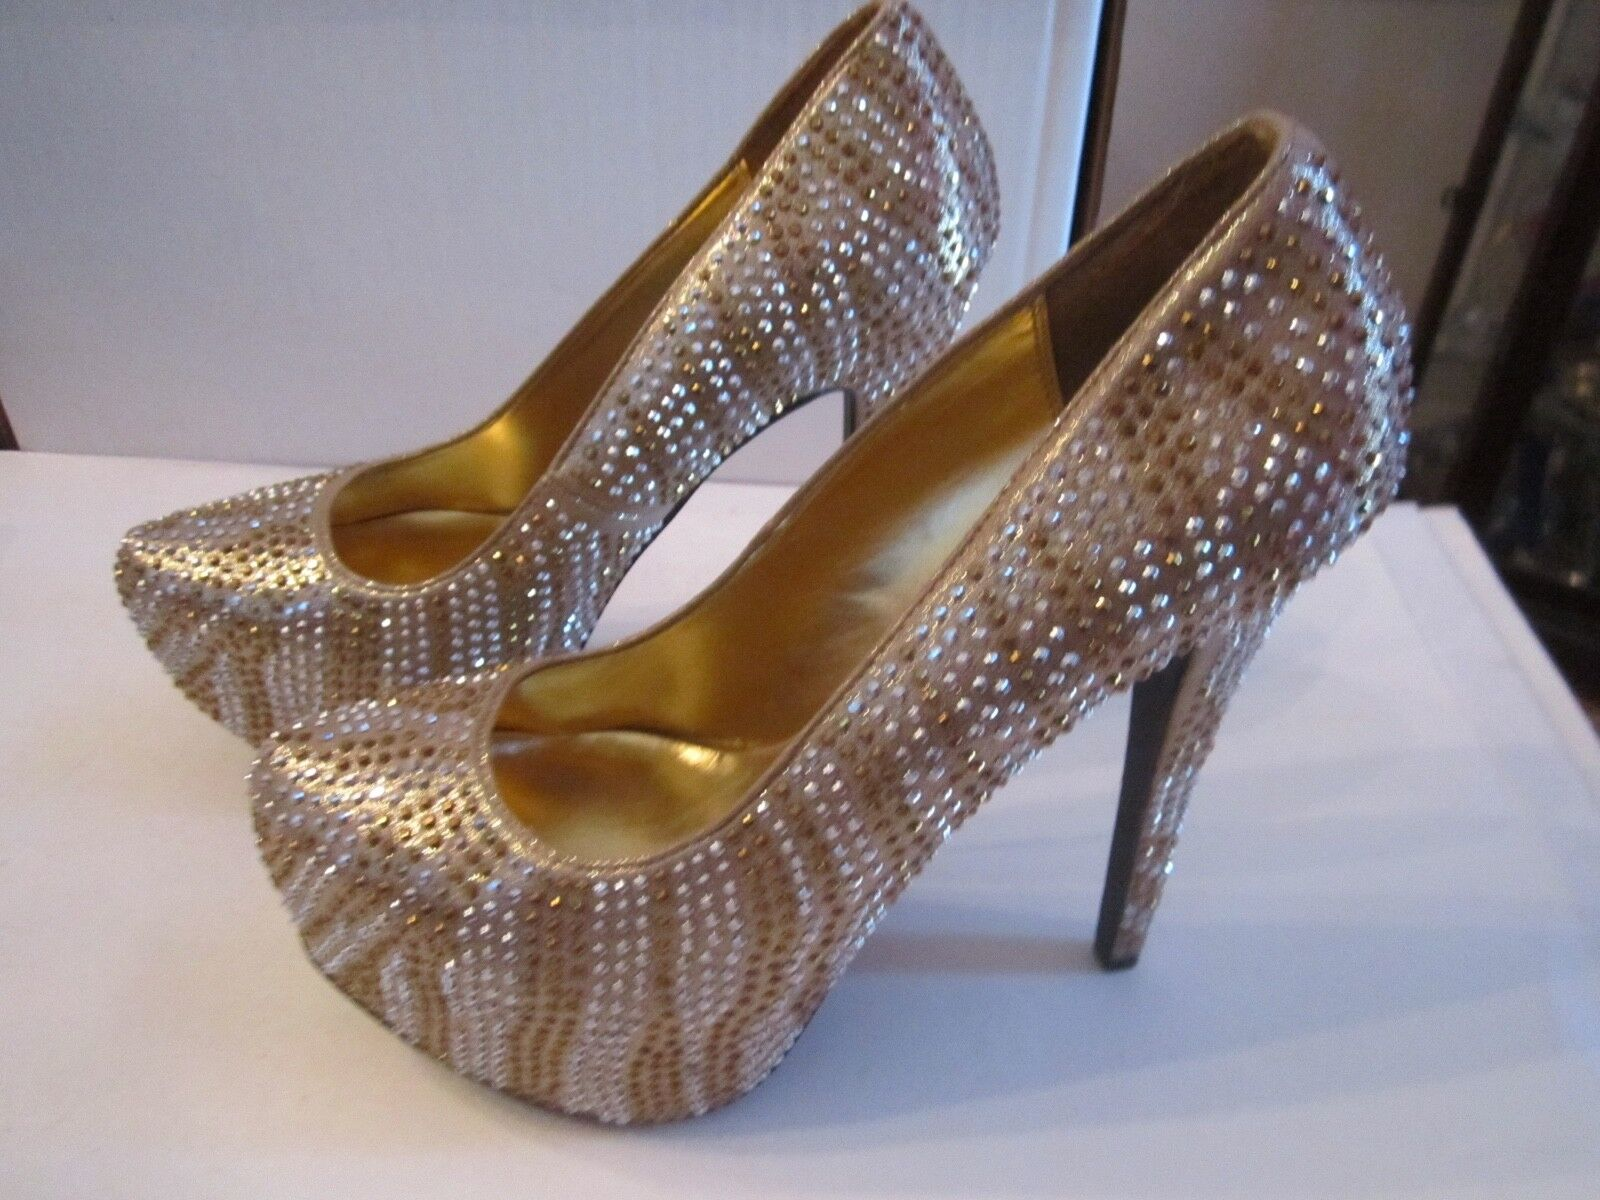 BRECKELLE'S gold CRYSTAL STILETTO'S SHOES - SIZE 9 IN BOX -gold SILVER CRYSTALS